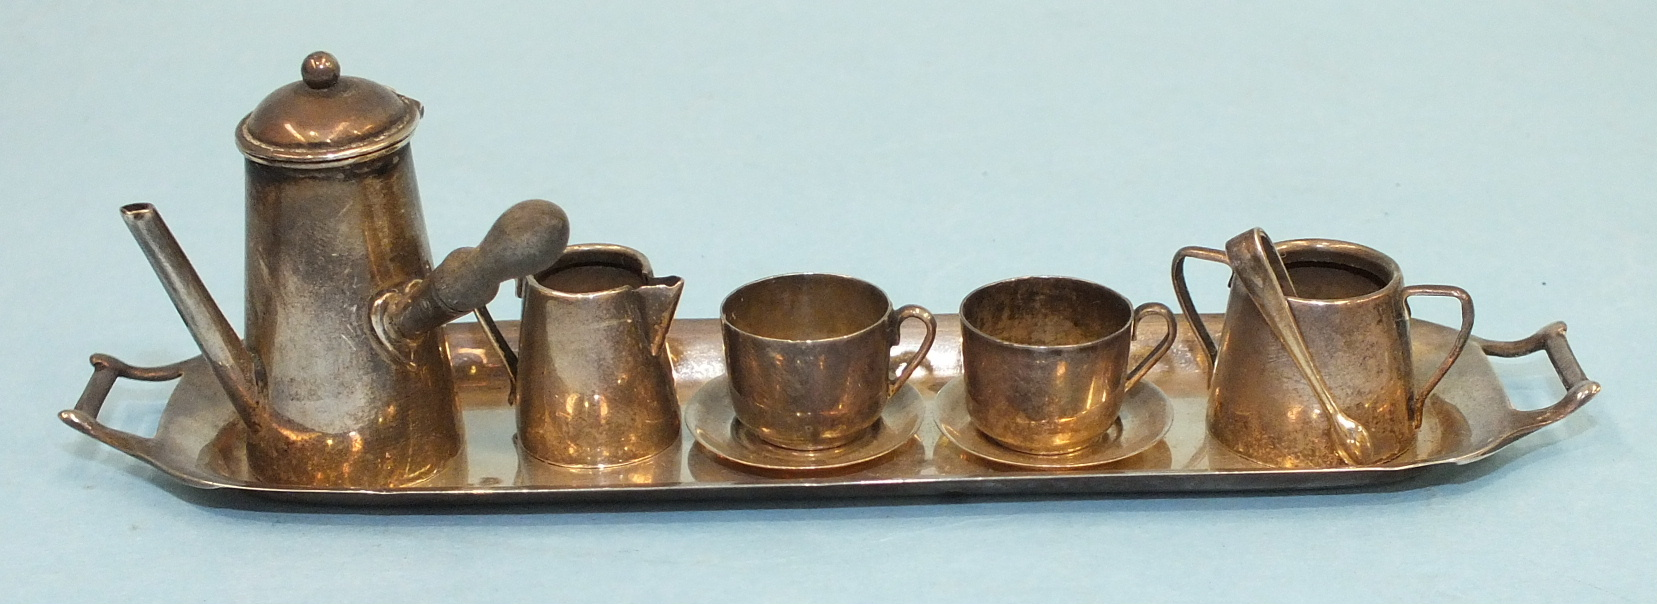 Lot 407 - A miniature silver coffee service, comprising: wooden-handled coffee pot, sugar basin with tongs,